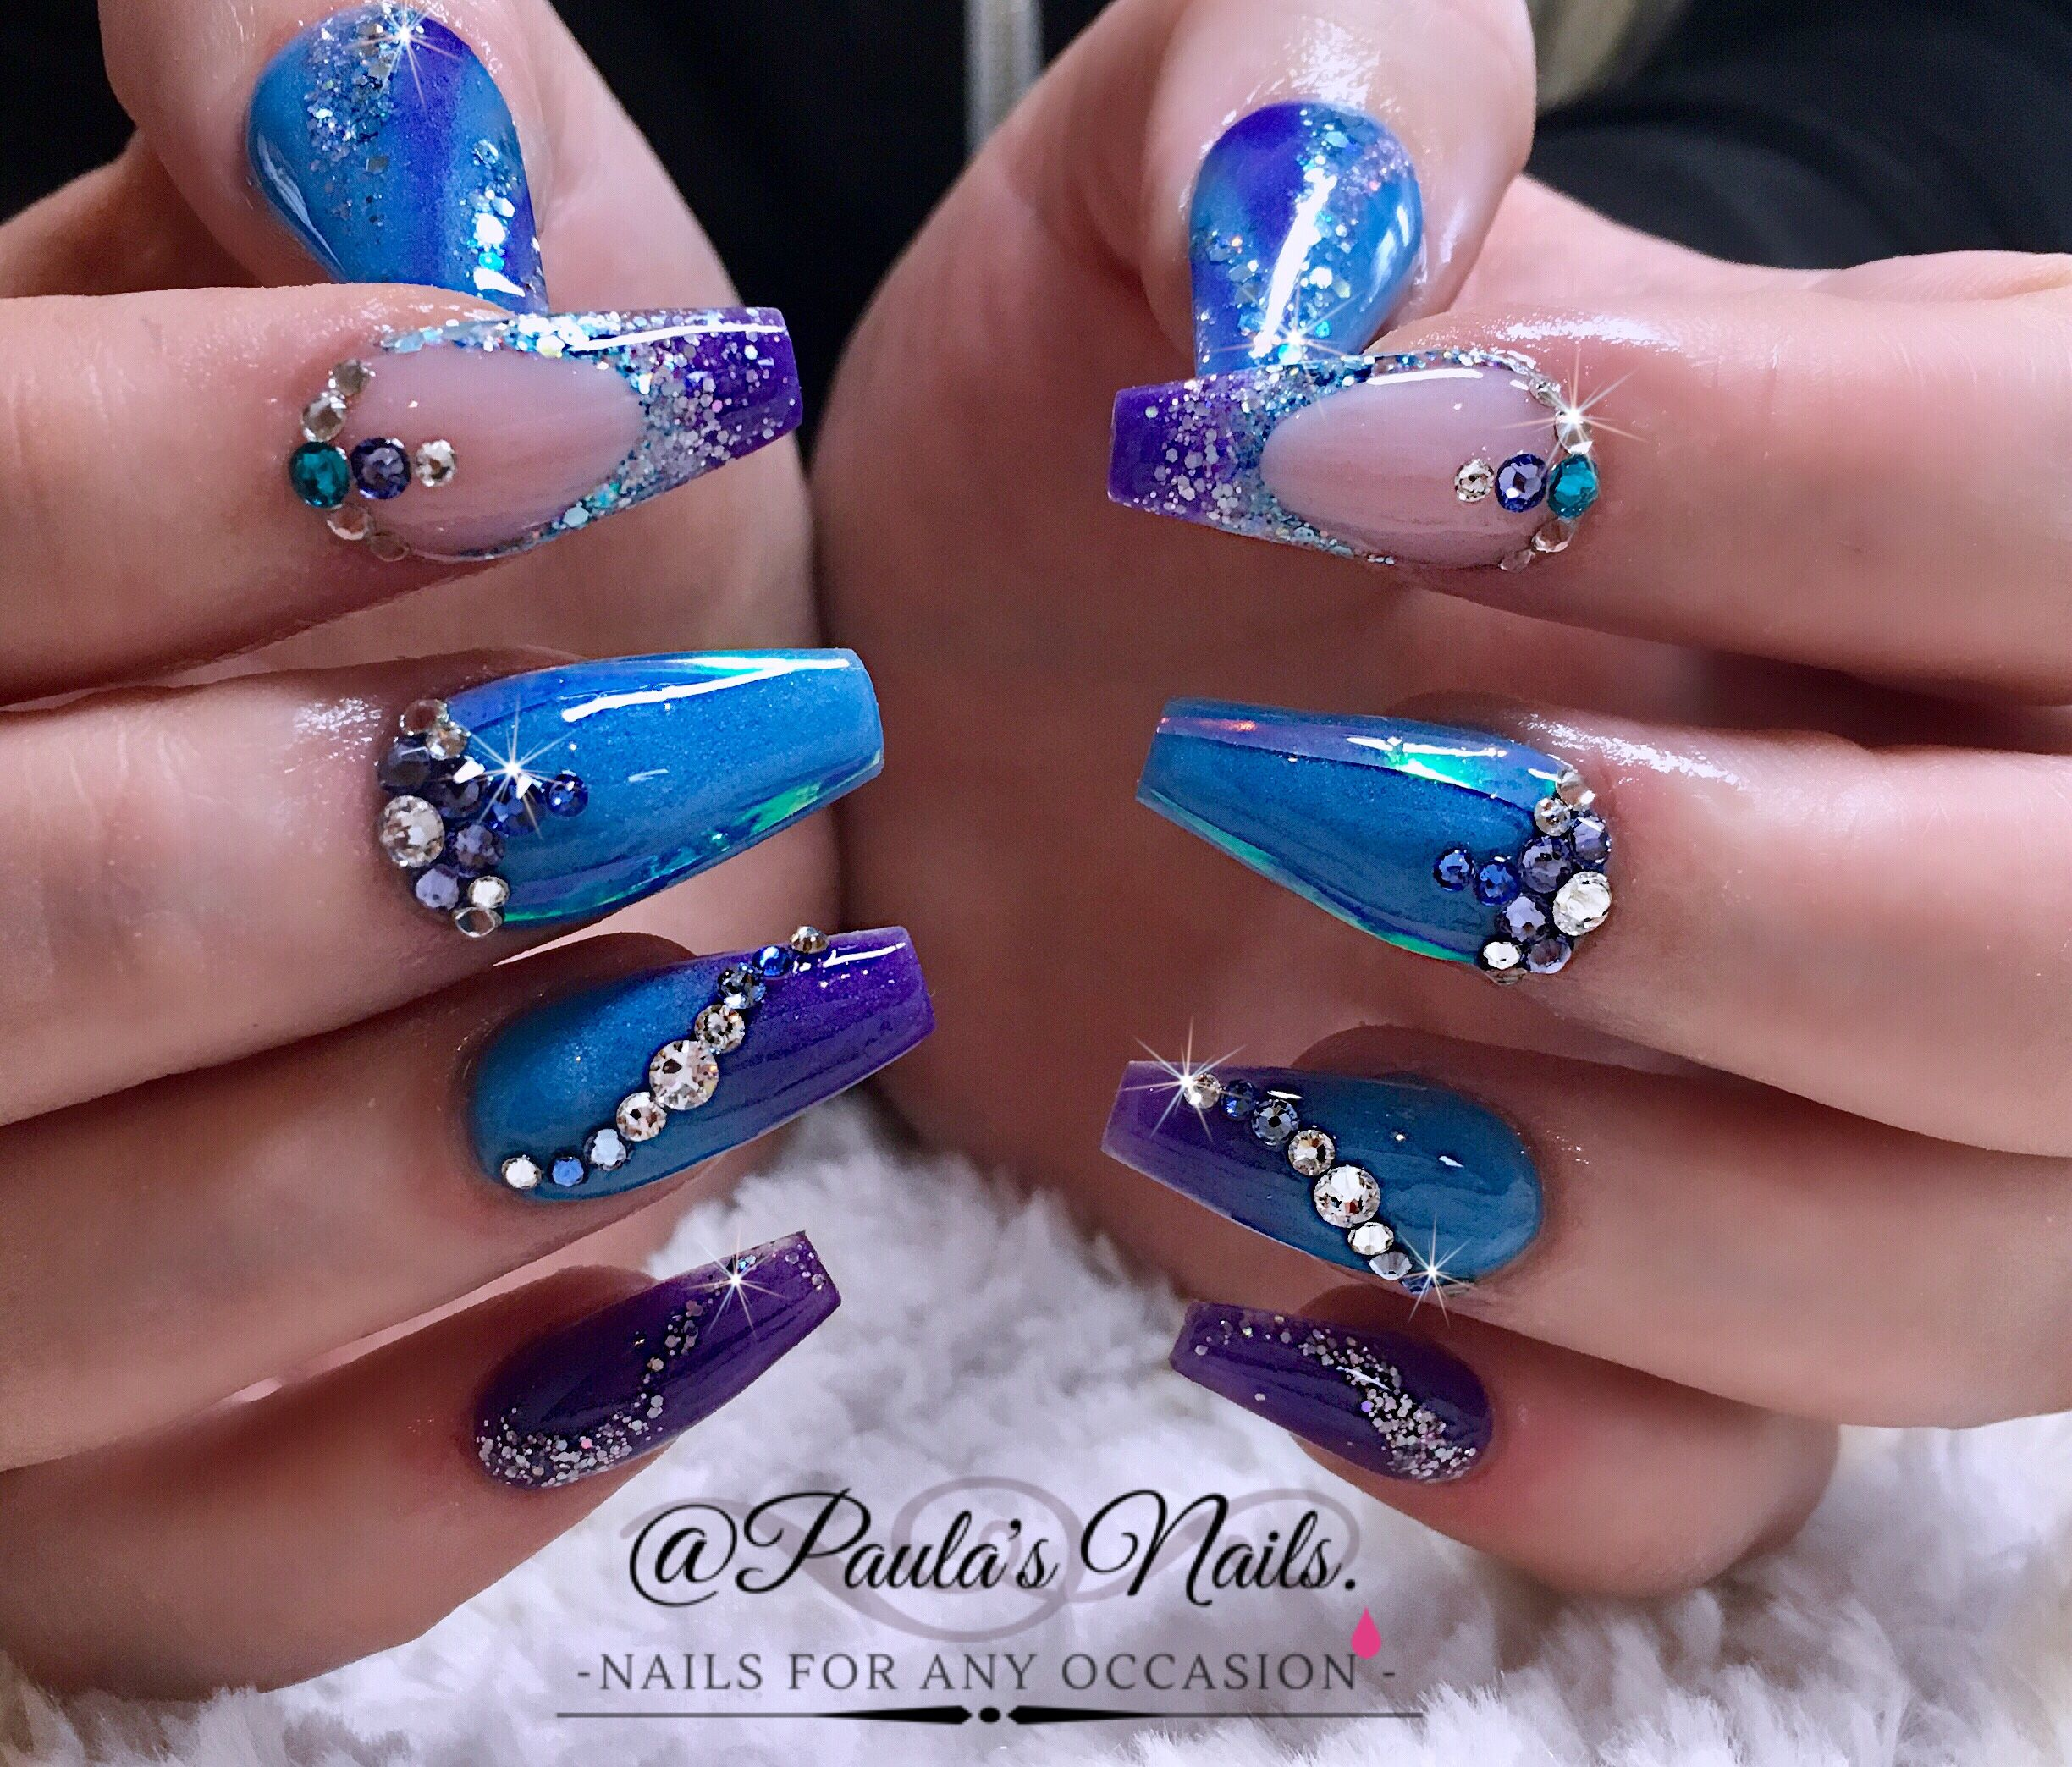 Cute Coffin Nails In Blue With Rhinestones Nailart Nailswag Nailstagram Nails Design With Rhinestones Nail Art Rhinestones Purple Nail Designs